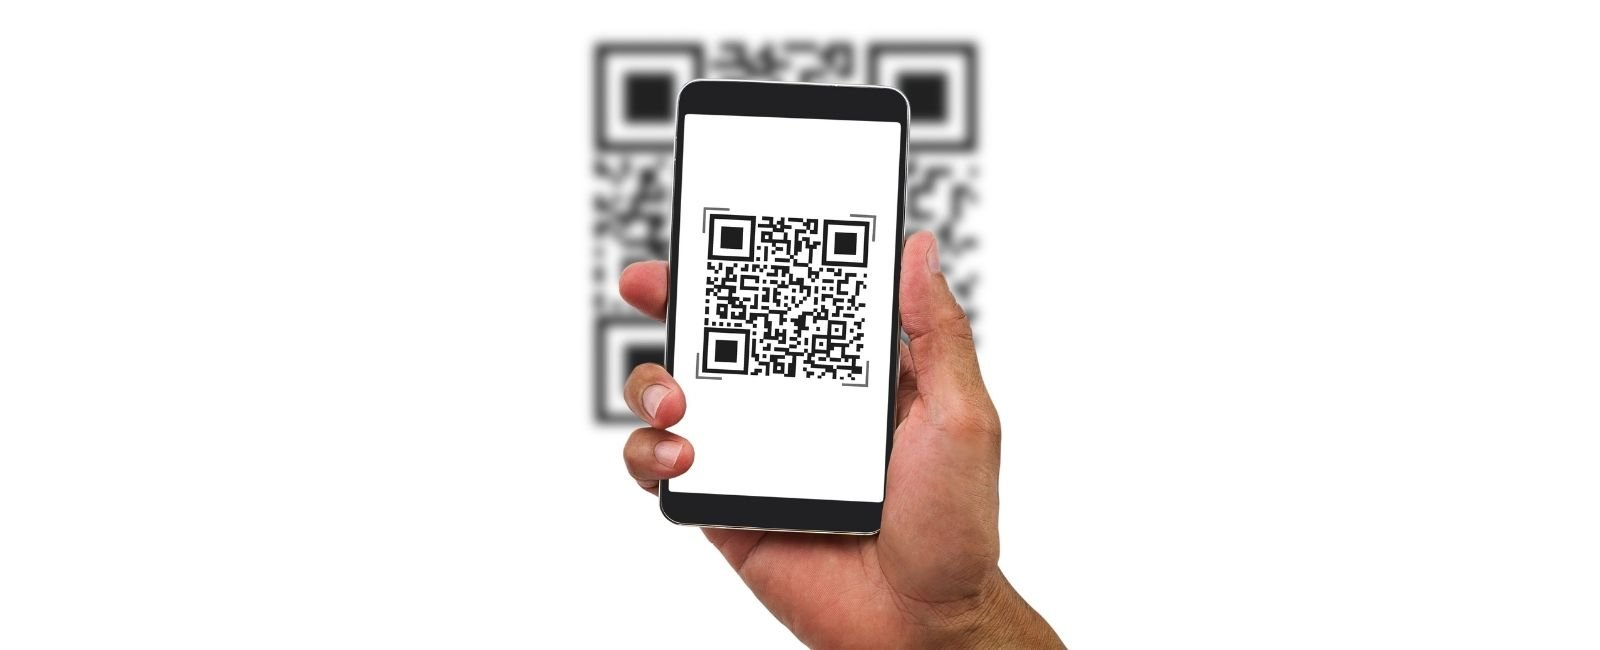 QR Codes - Could This Be The Year